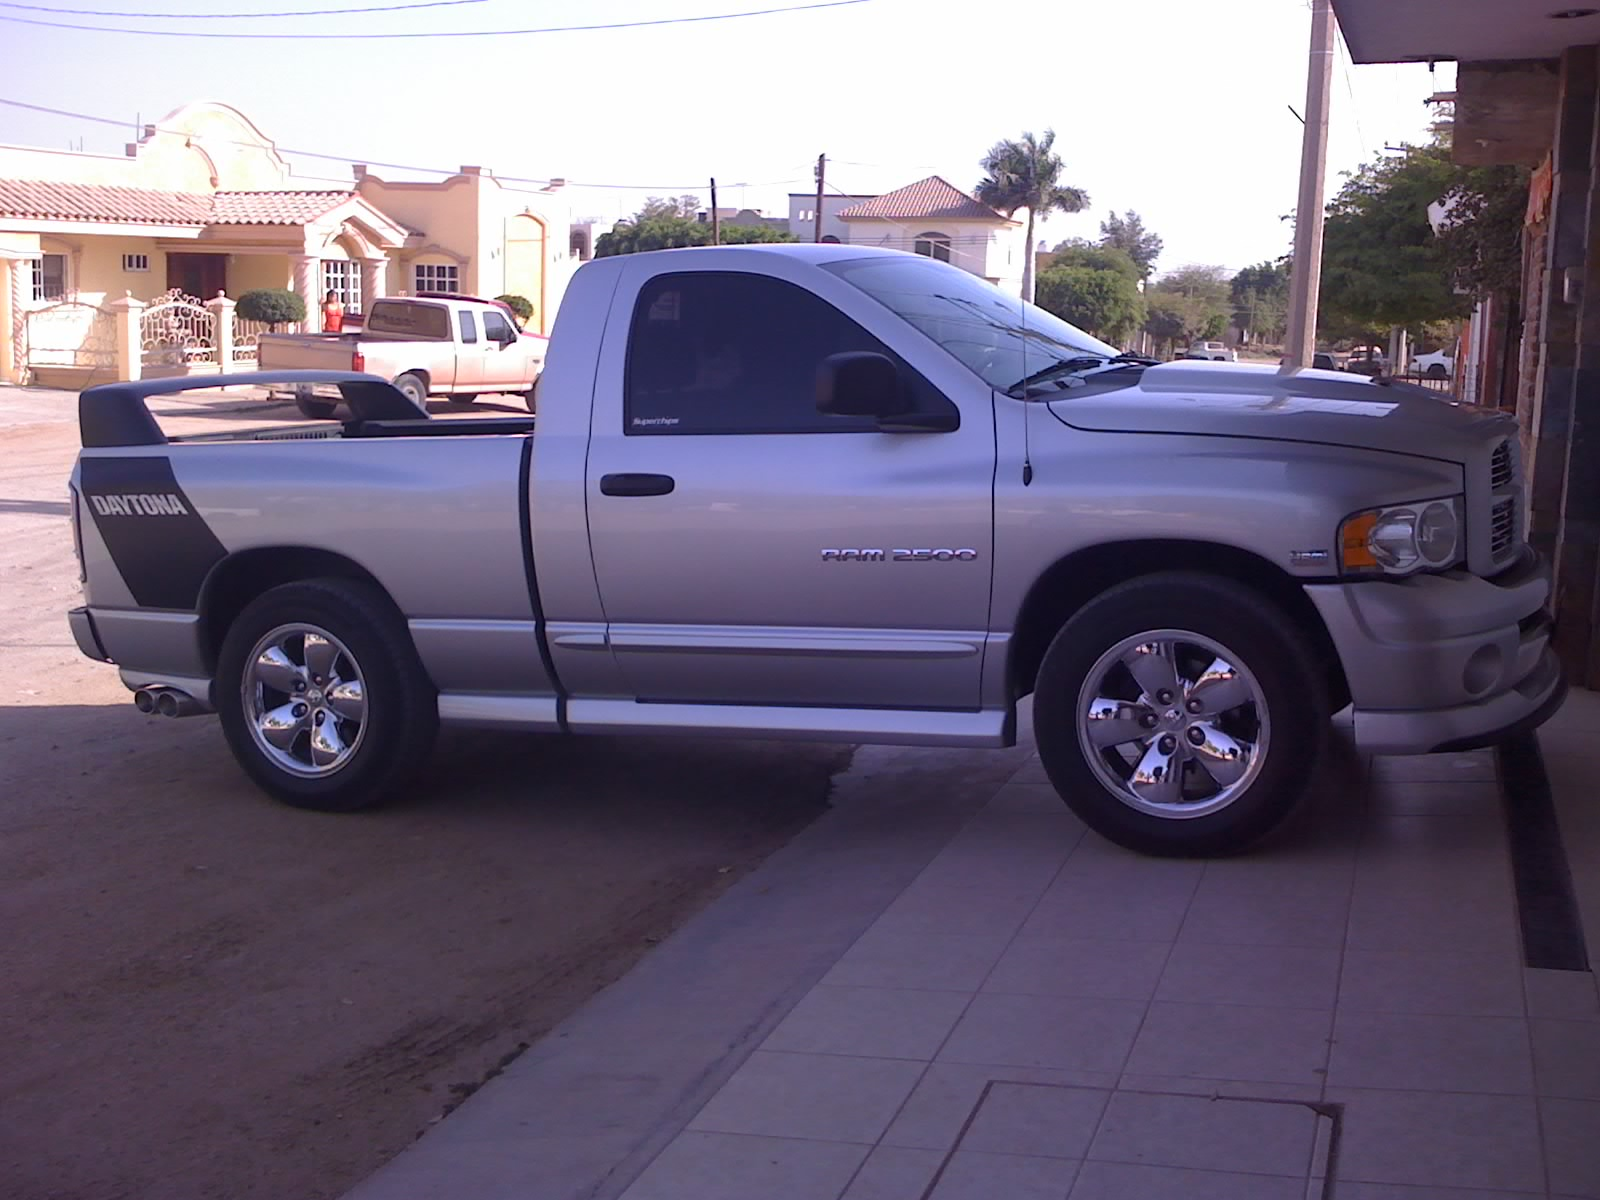 2005  Dodge Ram 1500 Ram Daytona  Edition 1500 picture, mods, upgrades